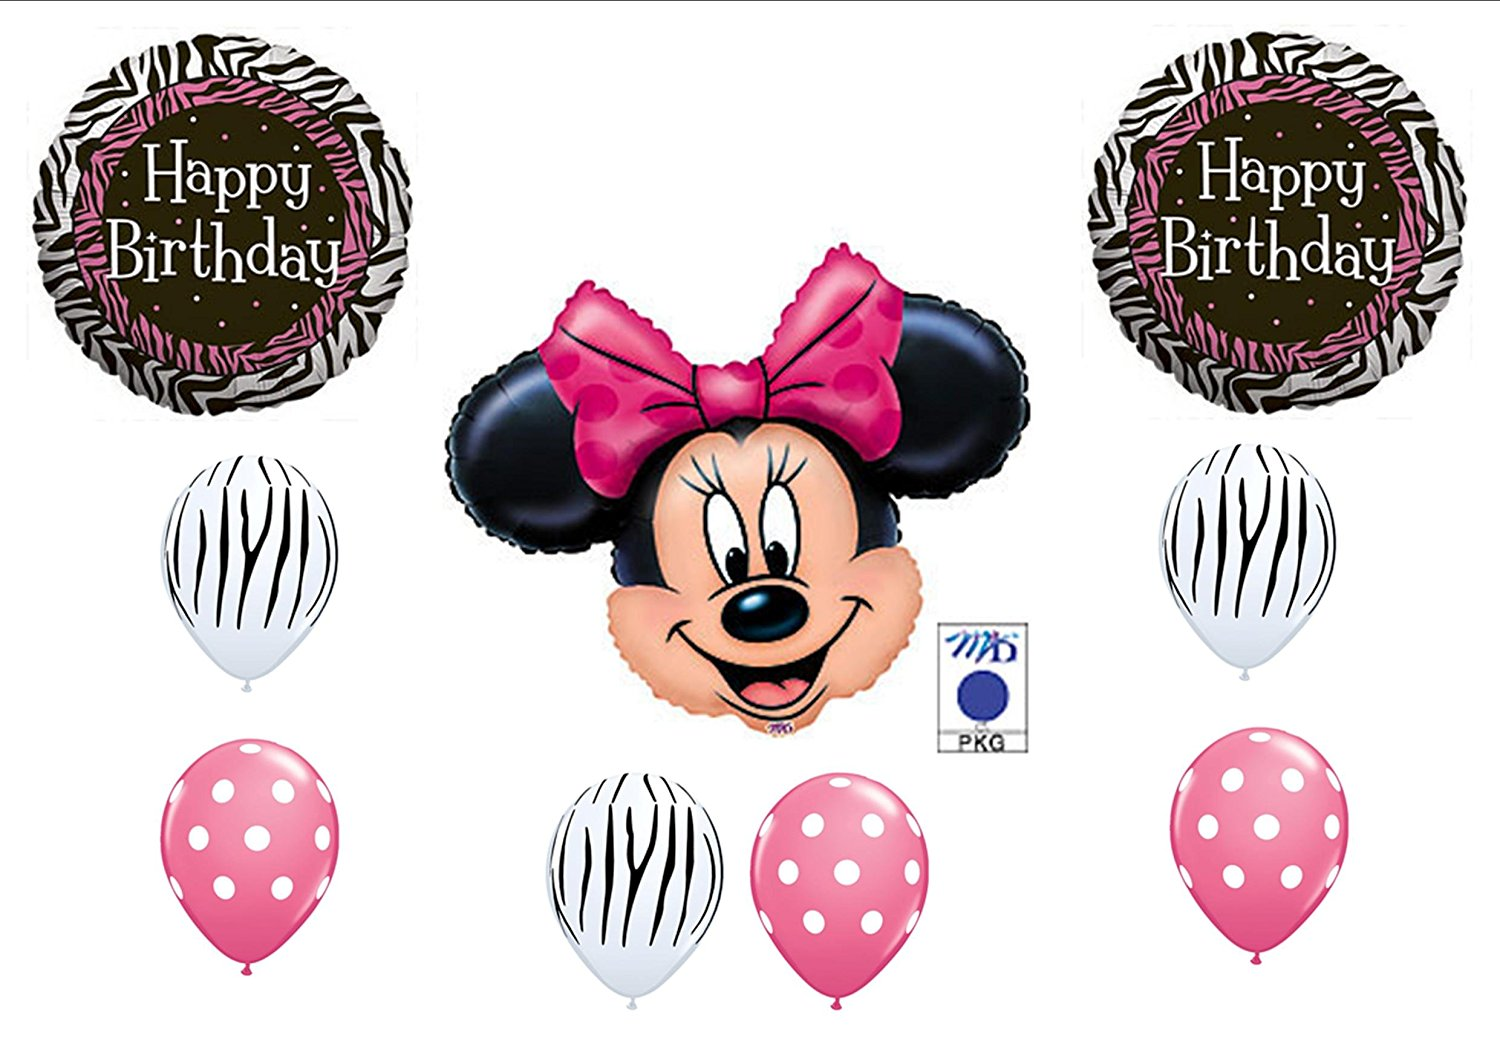 PINK MINNIE MOUSE AND ZEBRA PRINT BIRTHDAY PARTY Balloons Decorations Supplies By Minnie Mouse Zebra Birthday Anagram